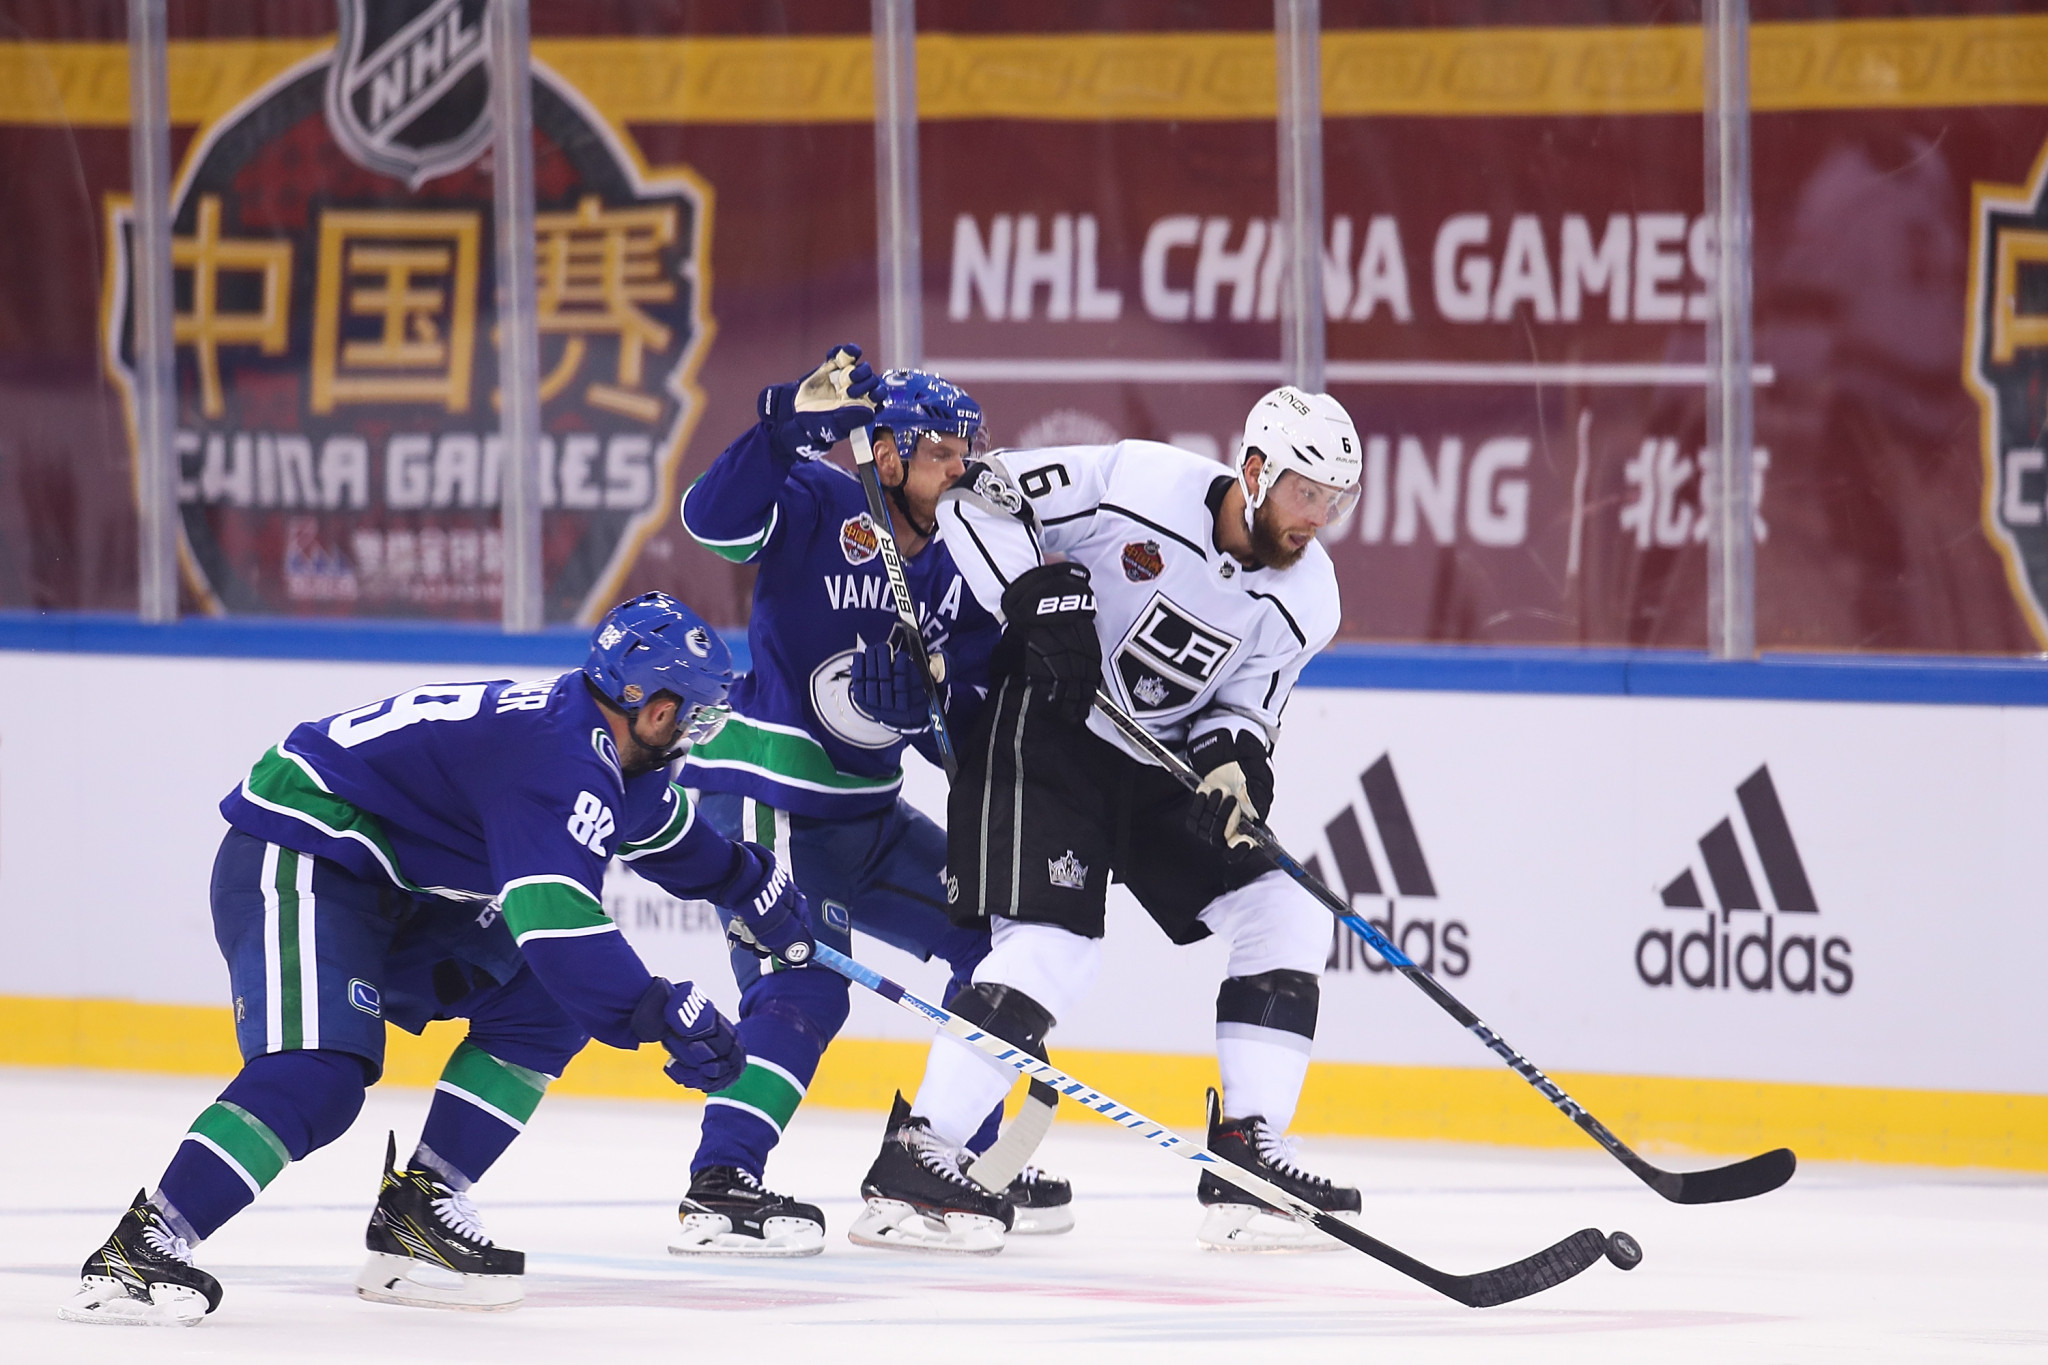 An NHL pre-season game took place in China between the Vancouver Canucks and the Los Angeles Kings in 2017 ©Getty Images